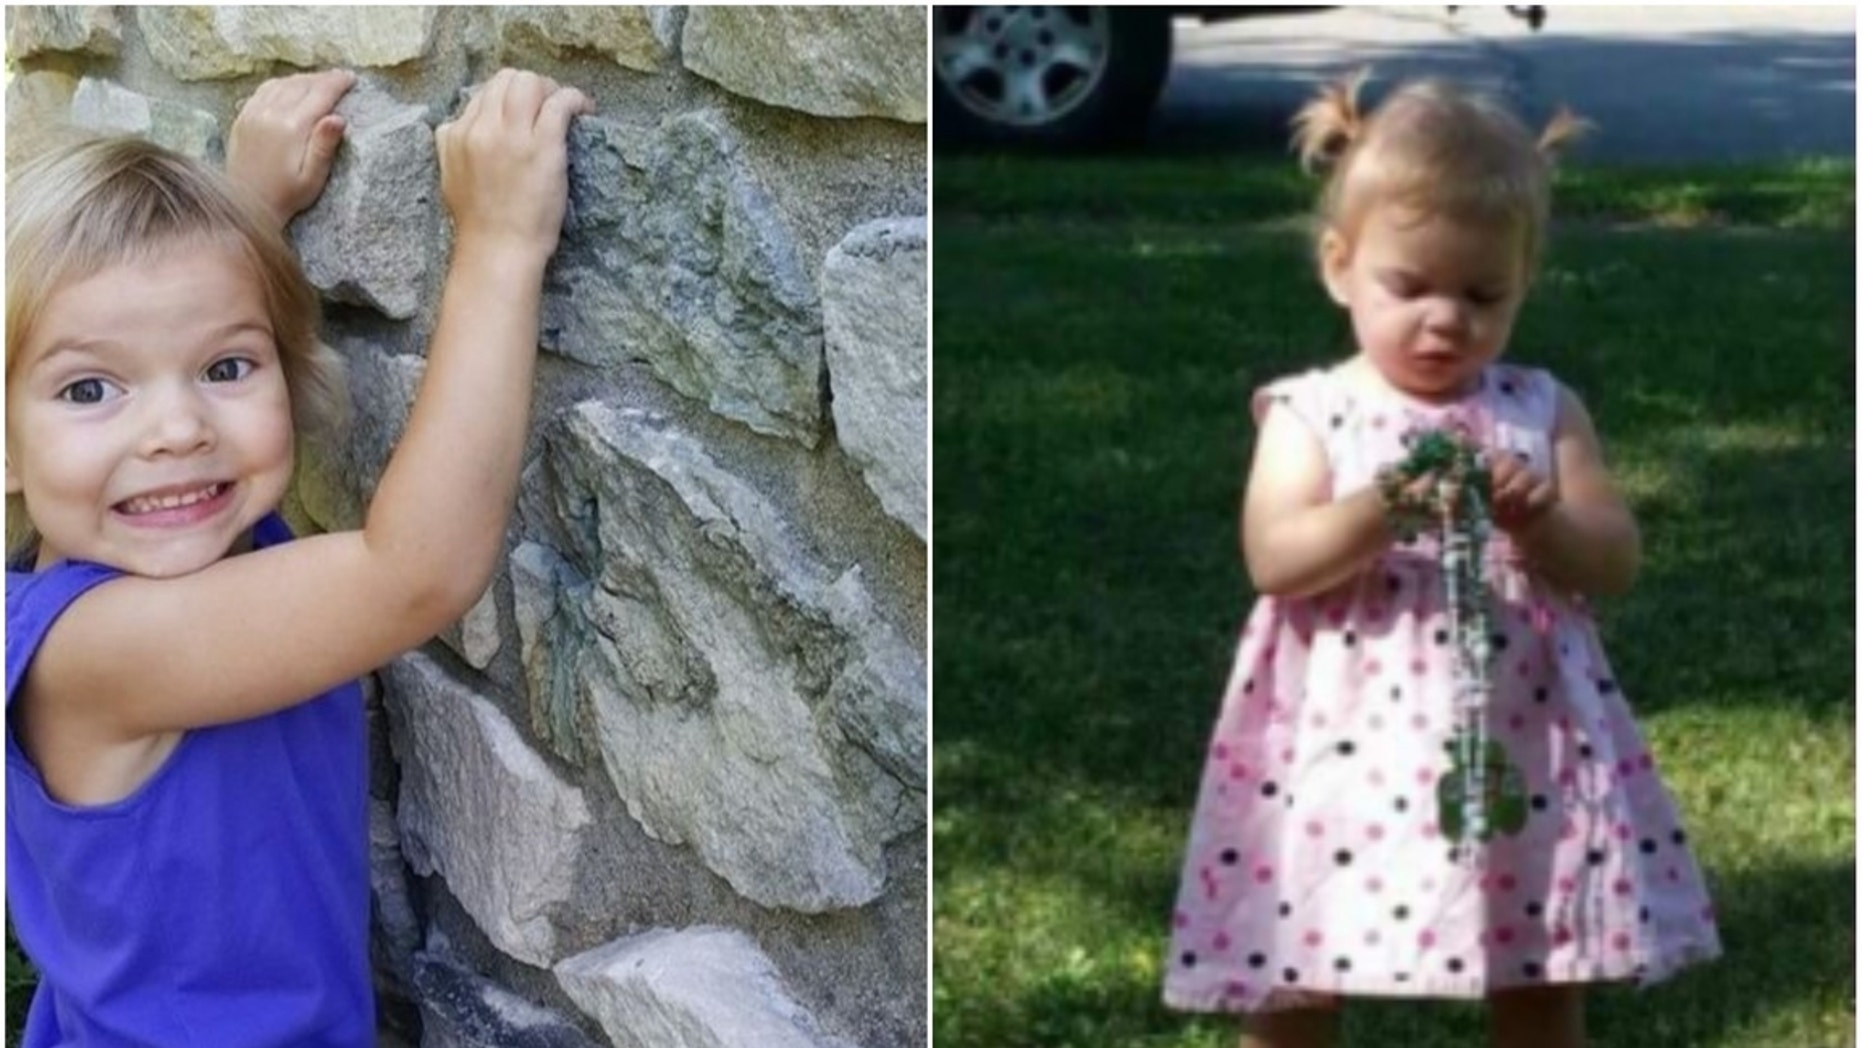 3-year old Alivia Viellieux, of Muncie, Indiana, died at home just days after being diagnosed with Influenza A